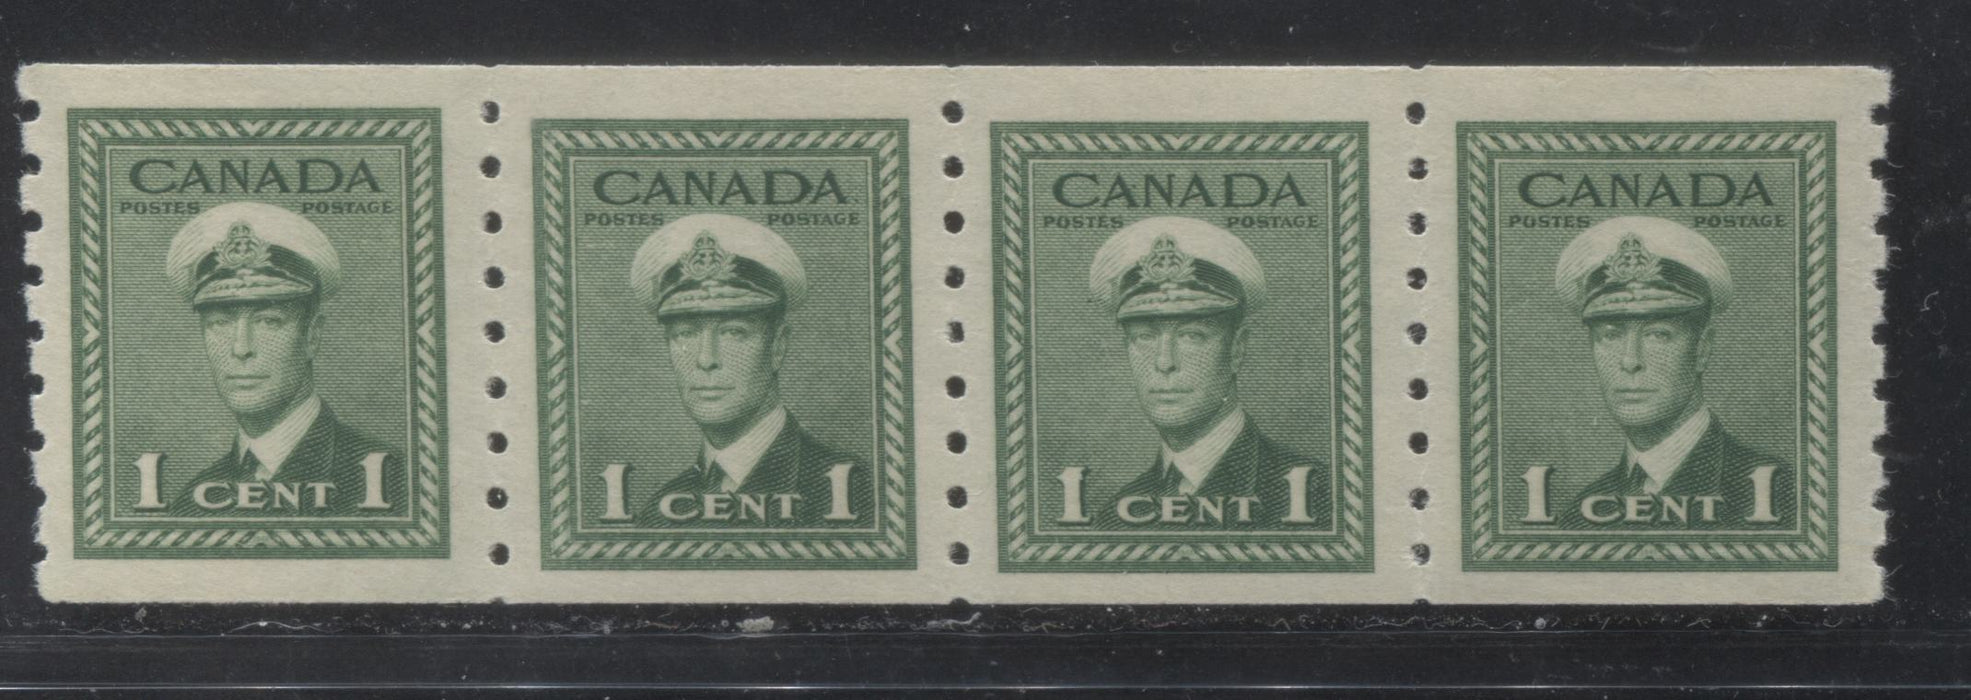 Canada #263i 1943-1948 War Issue - A Lovely VFNH 1c Green Coil Jump Strip on Ribbed Vertical Wove With Smooth Cream Gum